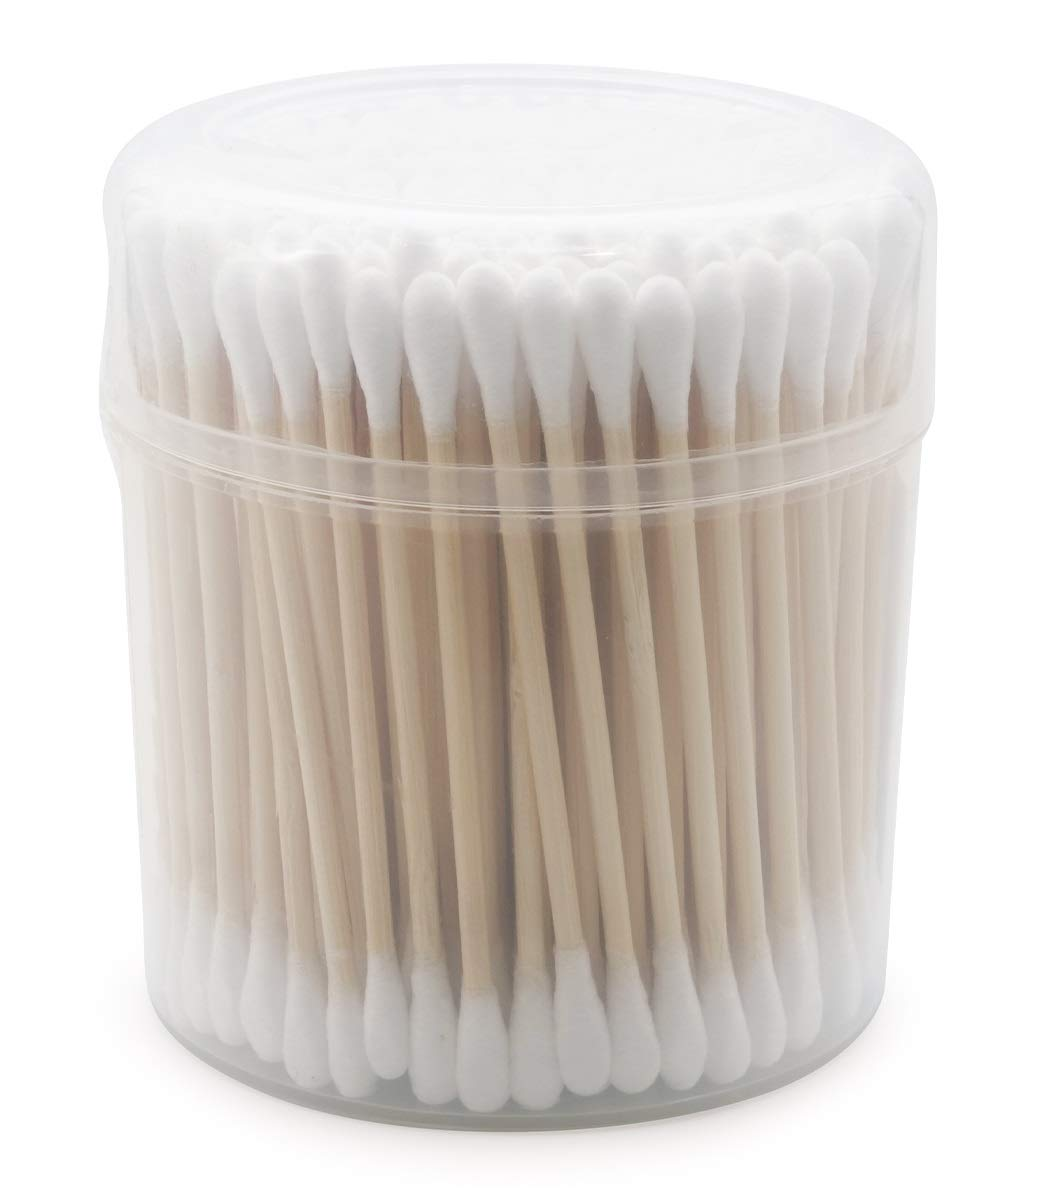 Popular popular 20 PACK Cheap mail order specialty store Wooden Cotton Swabs 600 - Count Biodegradable